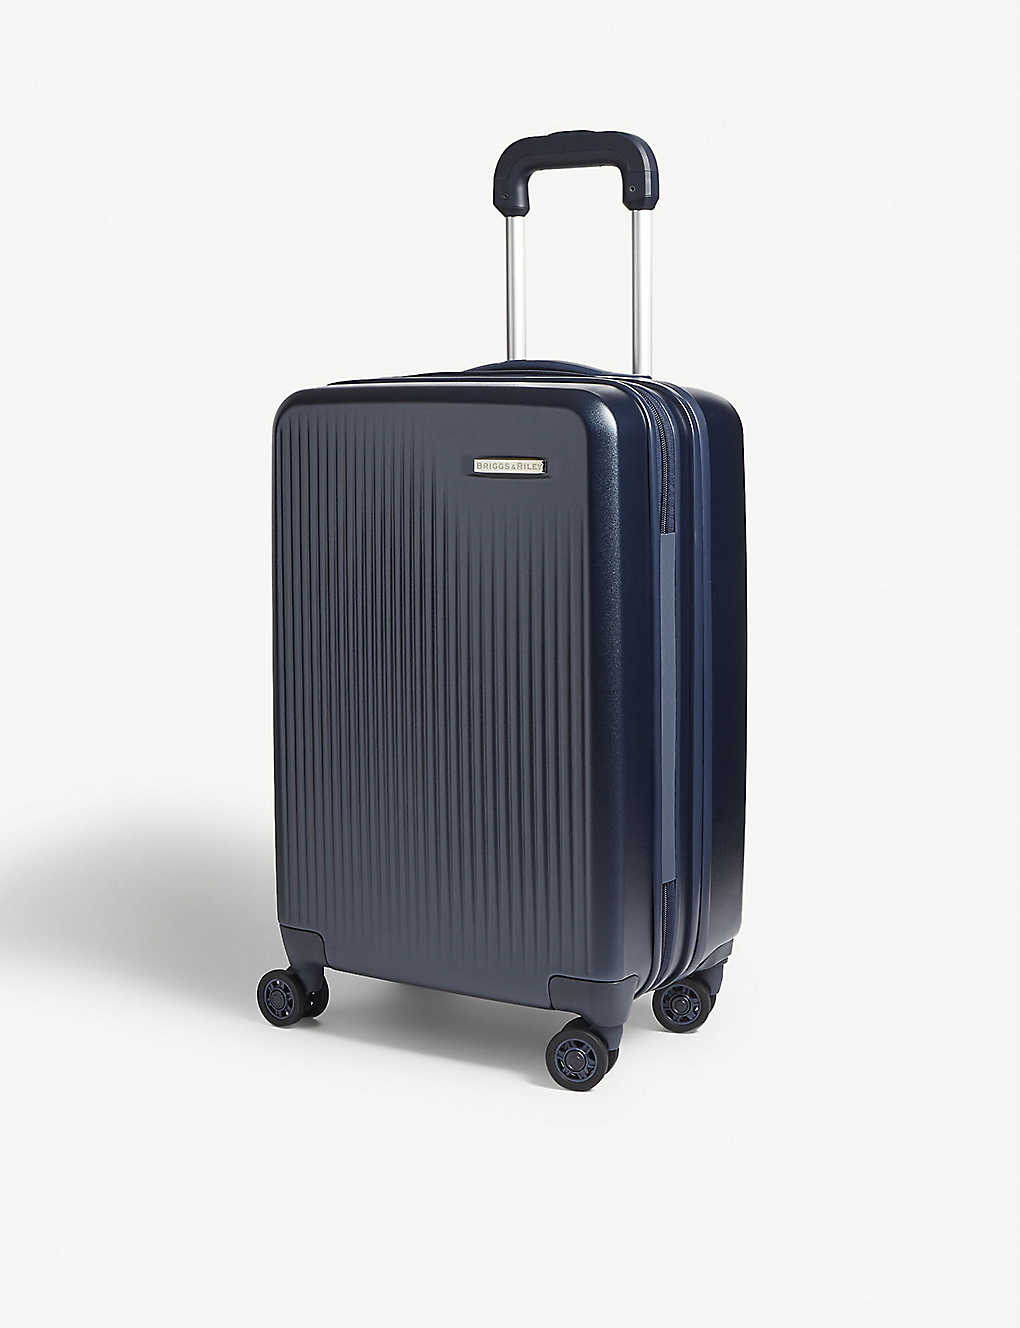 BRIGGS & RILEY: Sympatico carry-on expandable four-wheel suitcase 58cm